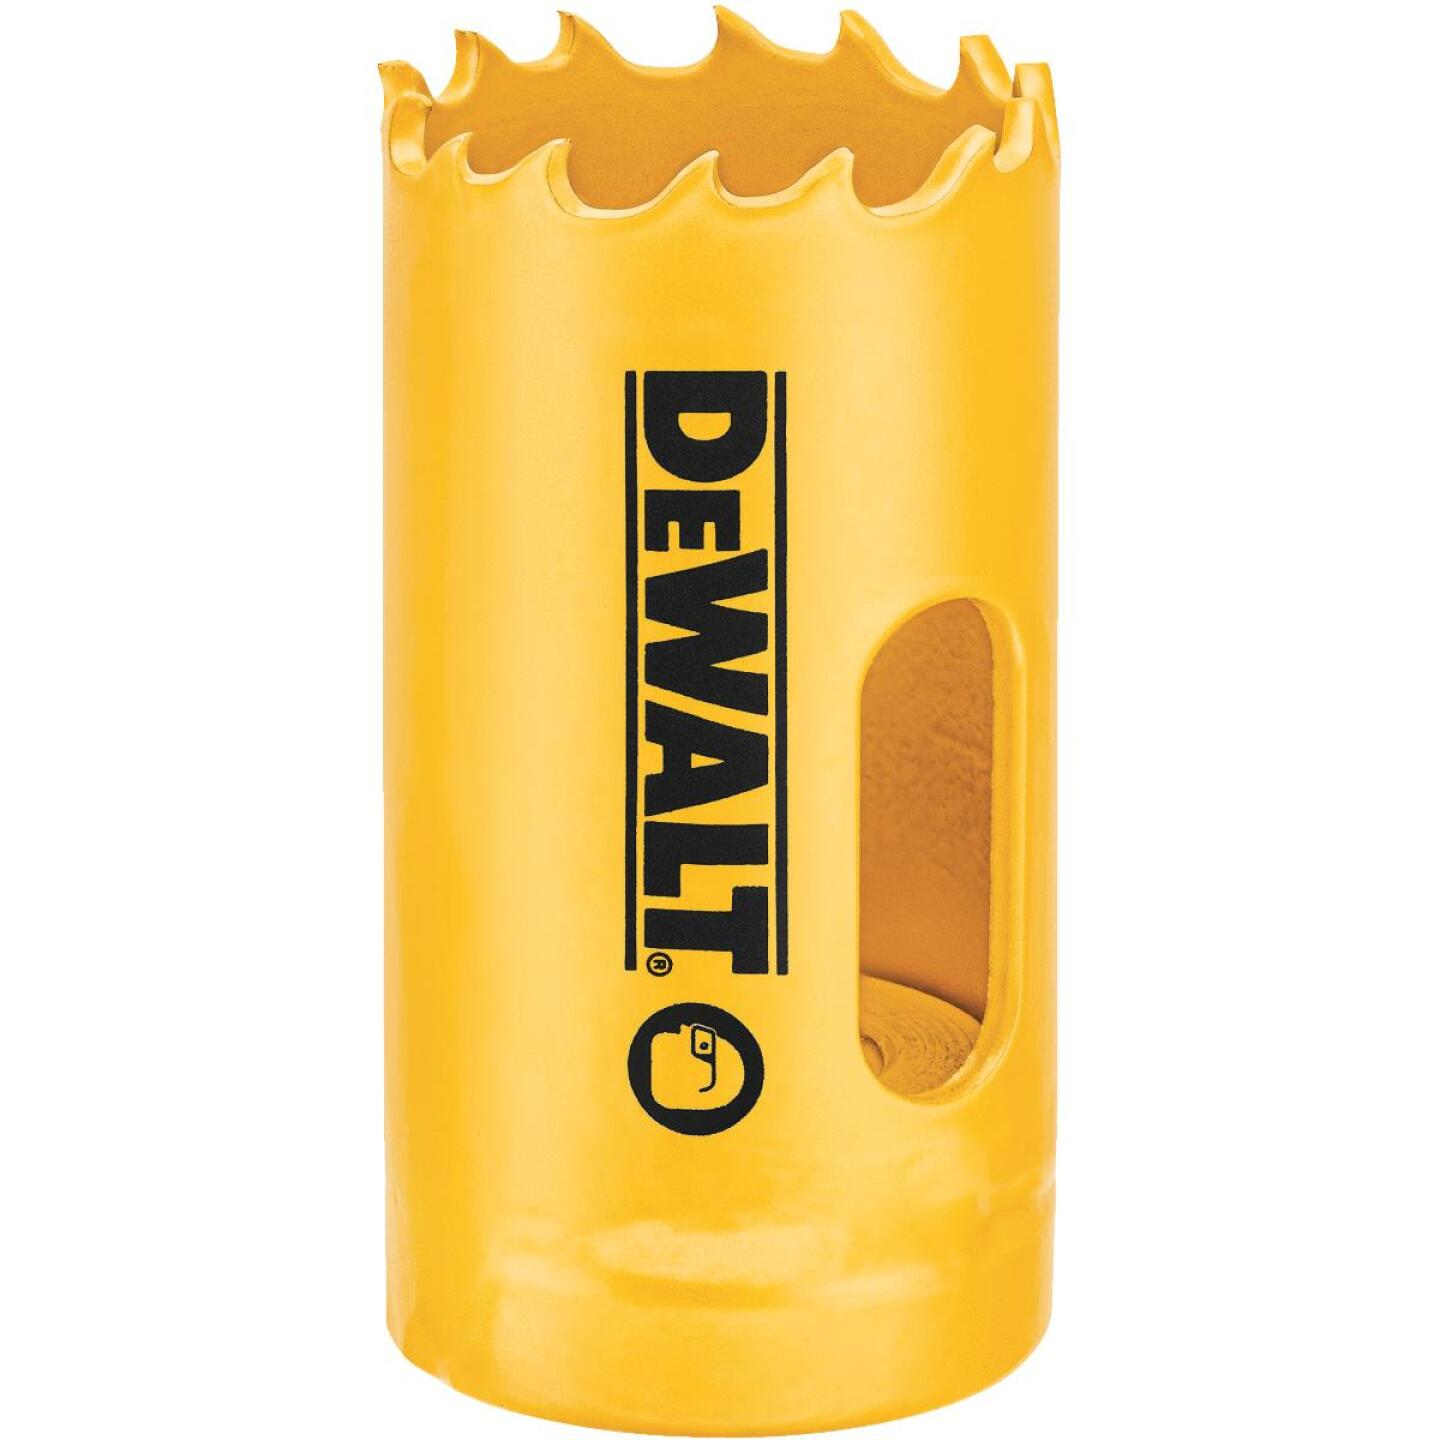 DeWalt 1-1/8 In. Bi-Metal Hole Saw Image 1